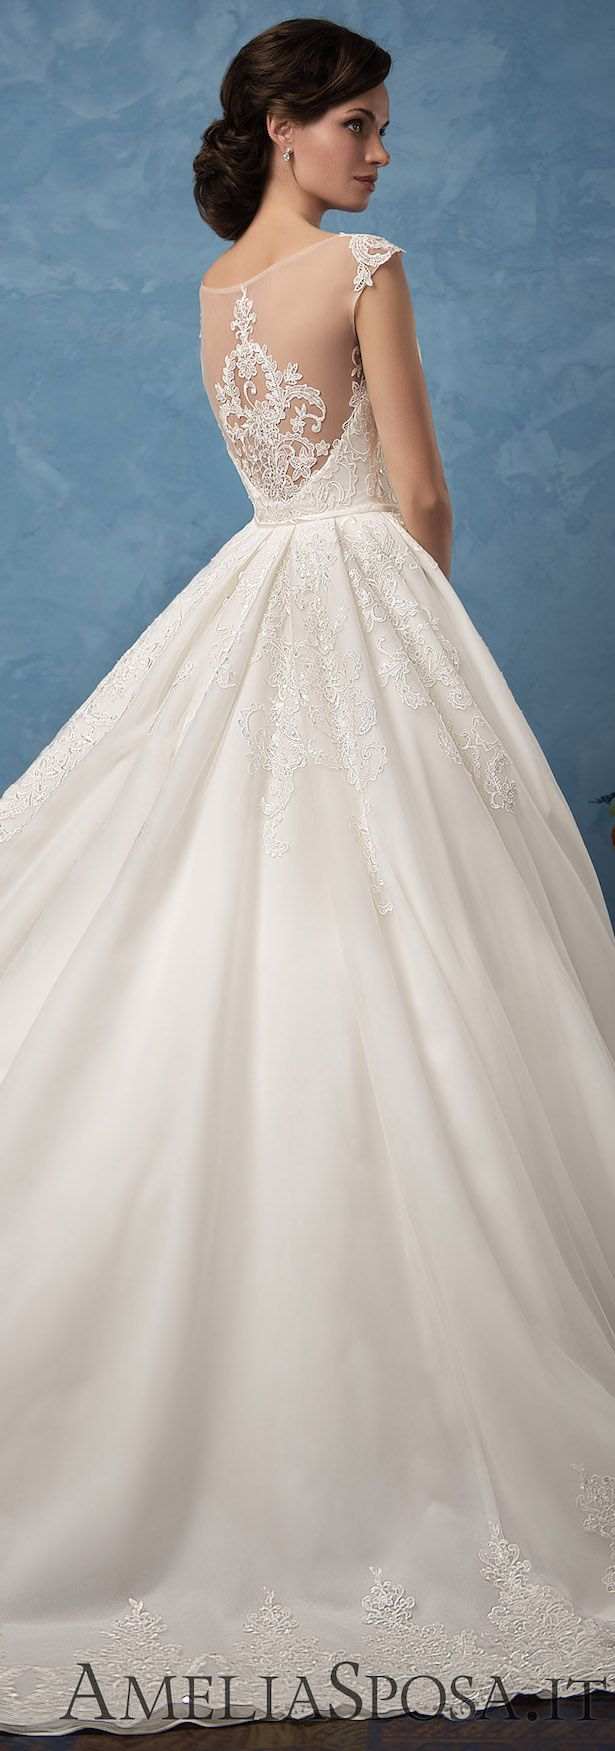 Wedding Dress by Amelia Sposa 2017 - Royal Blue Collection